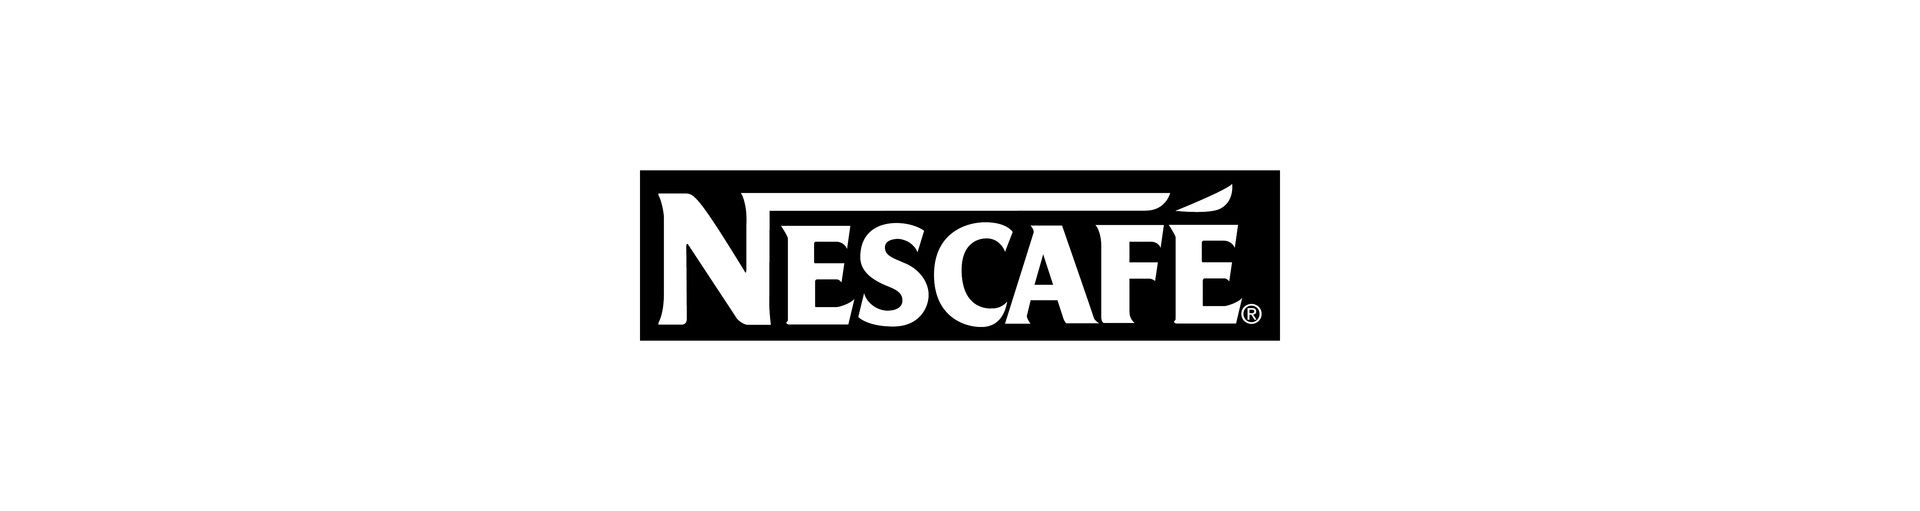 Nescafe coffee logo